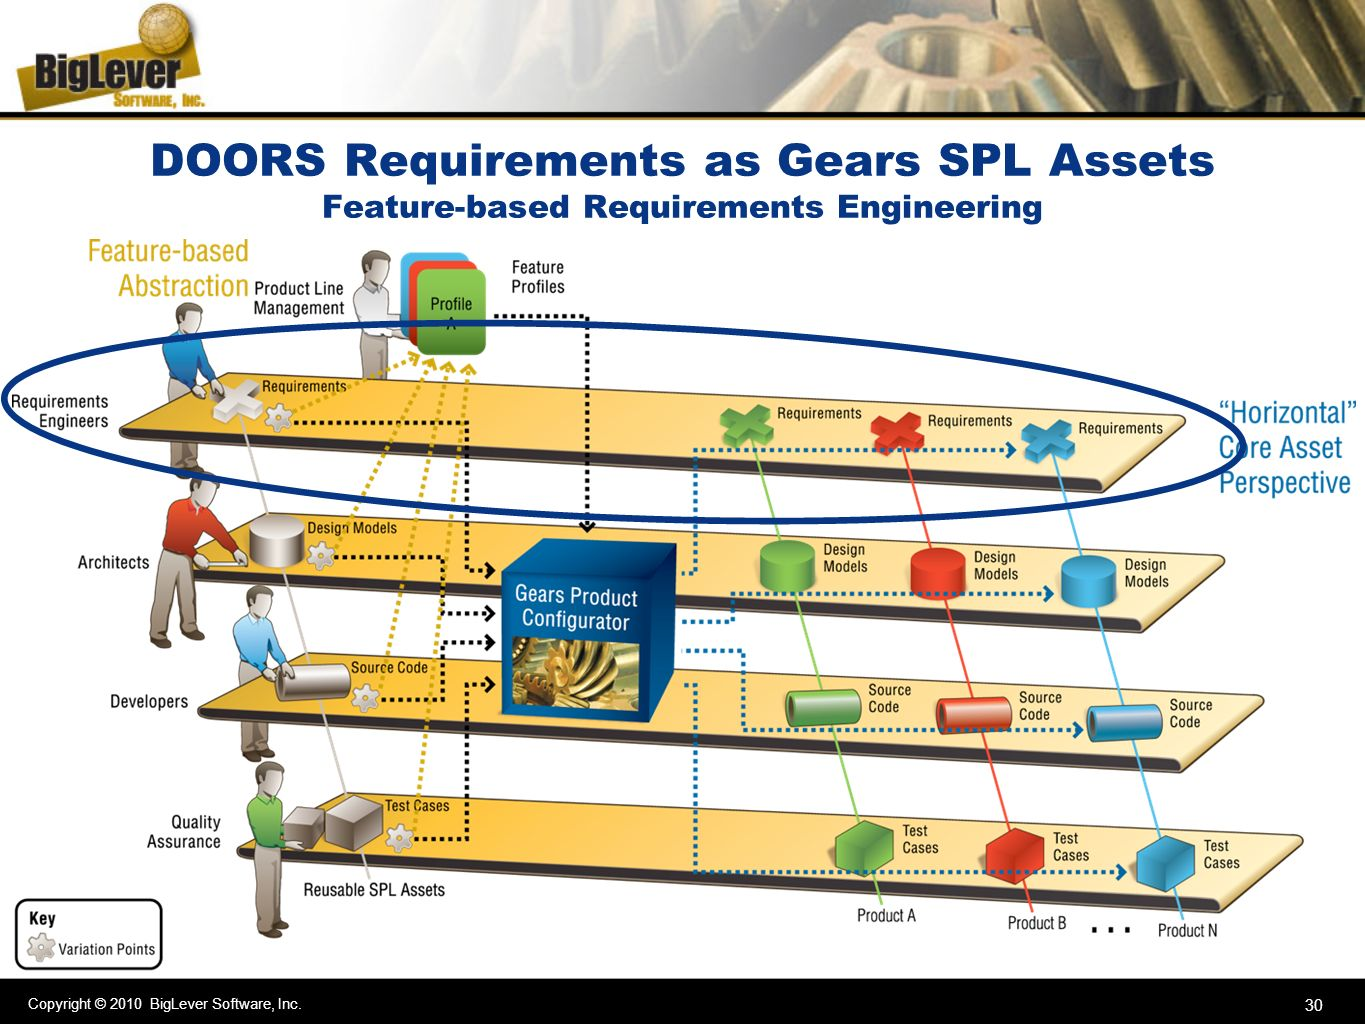 DOORS Requirements as Gears SPL Assets Feature-based Requirements Engineering